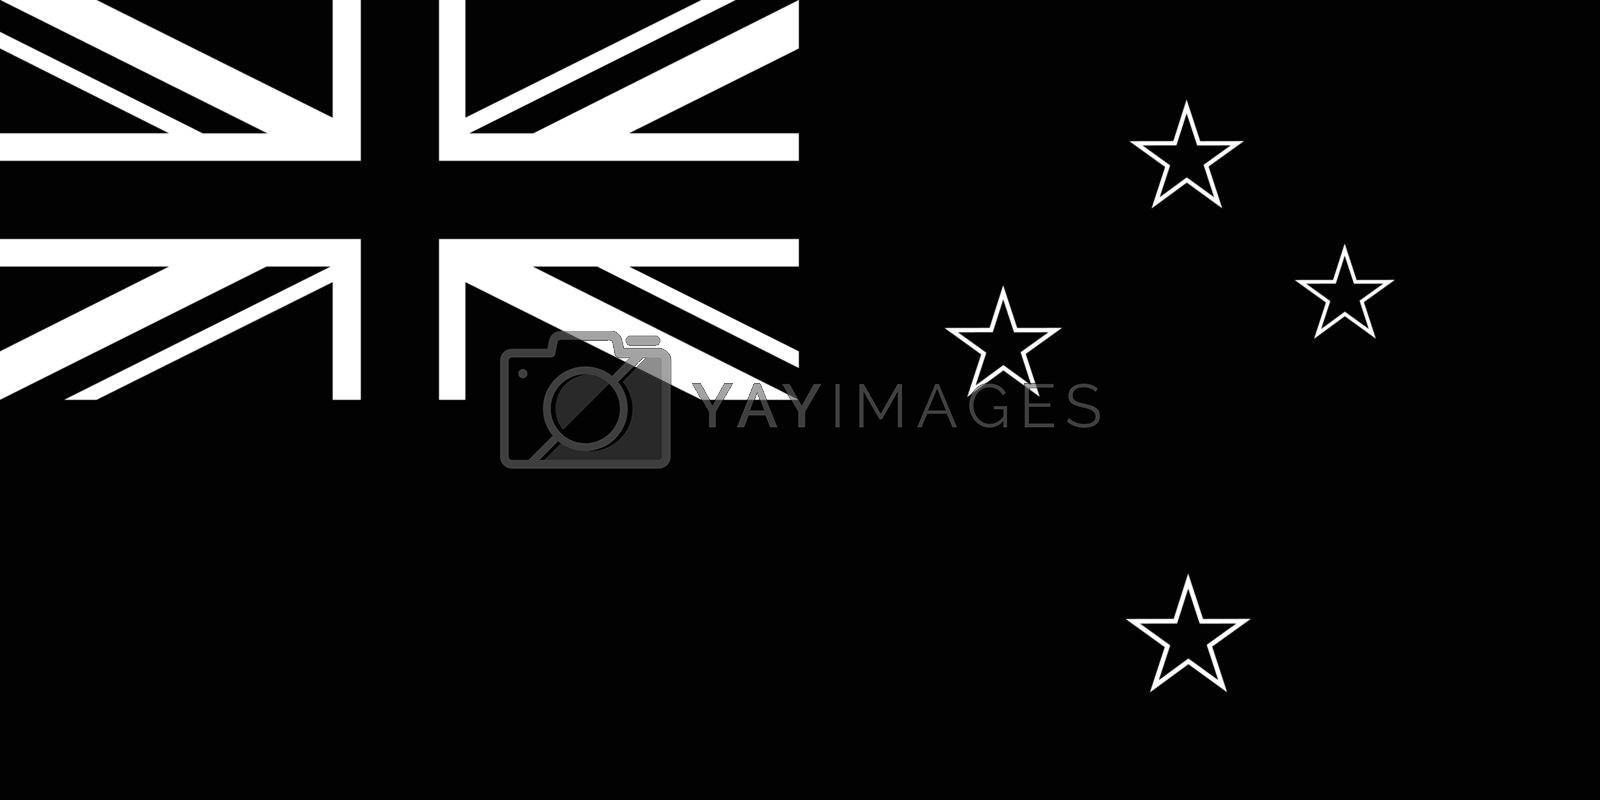 Black and white or monochrome flag of the state,  nation or country of New Zealand on isolated background.